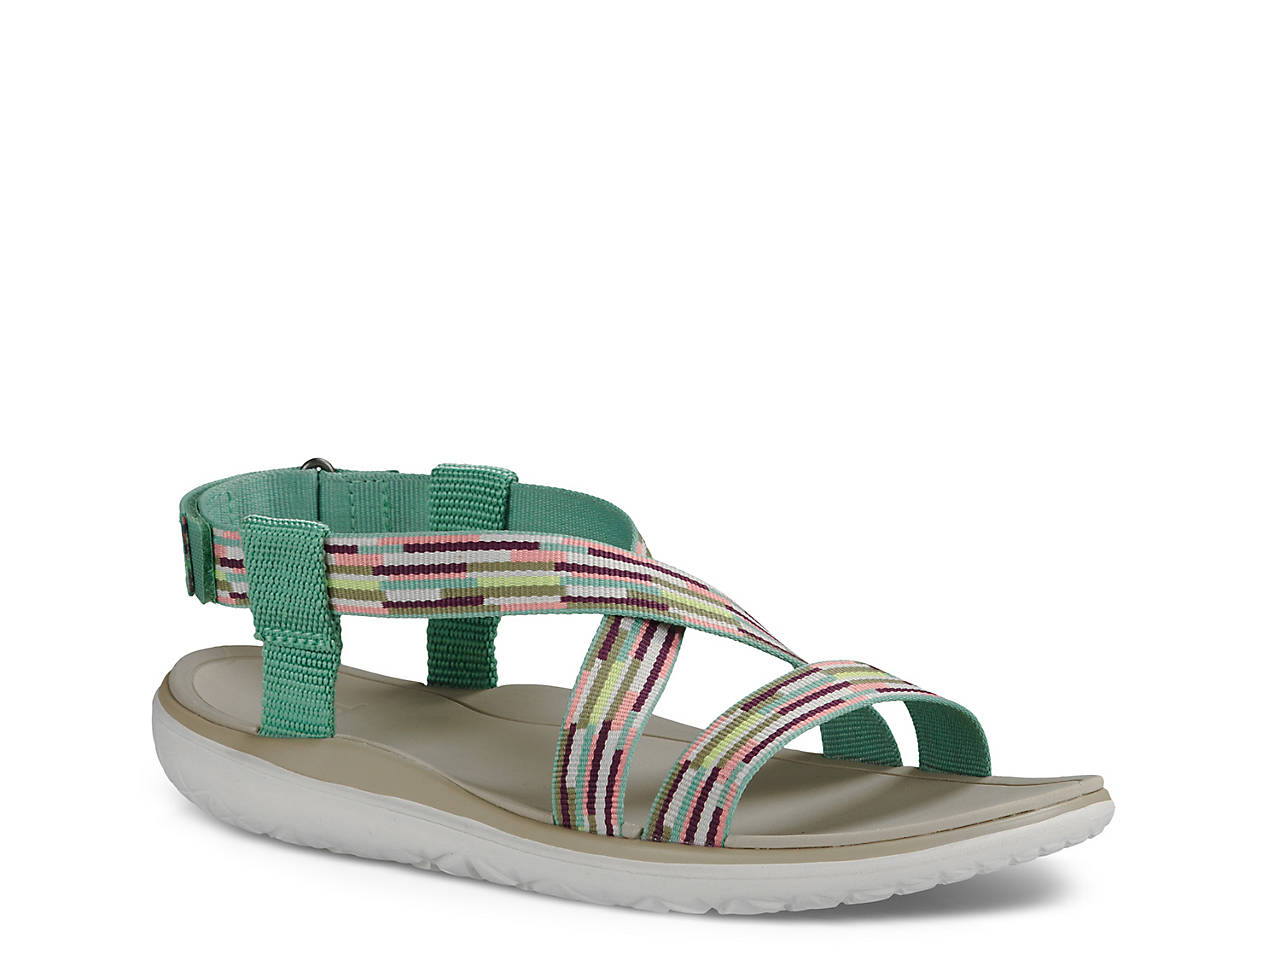 66f4e8fa097b2b Teva Terra-Float Livia Sport Sandal Women s Shoes